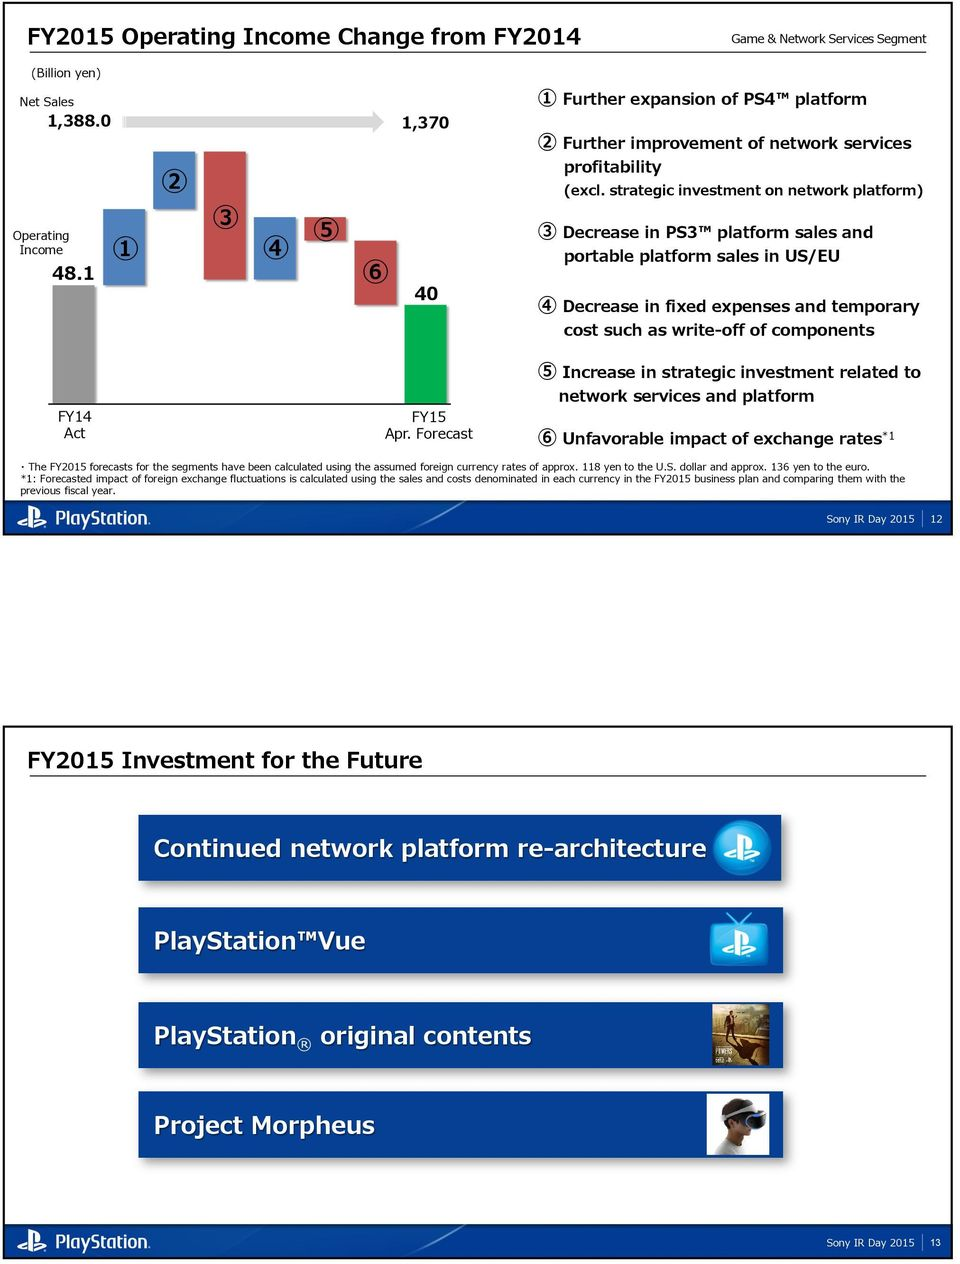 strategic investment on network platform) 3 Decrease in PS3 platform sales and portable platform sales in US/EU 4 Decrease in fixed expenses and temporary cost such as write-off of components FY14